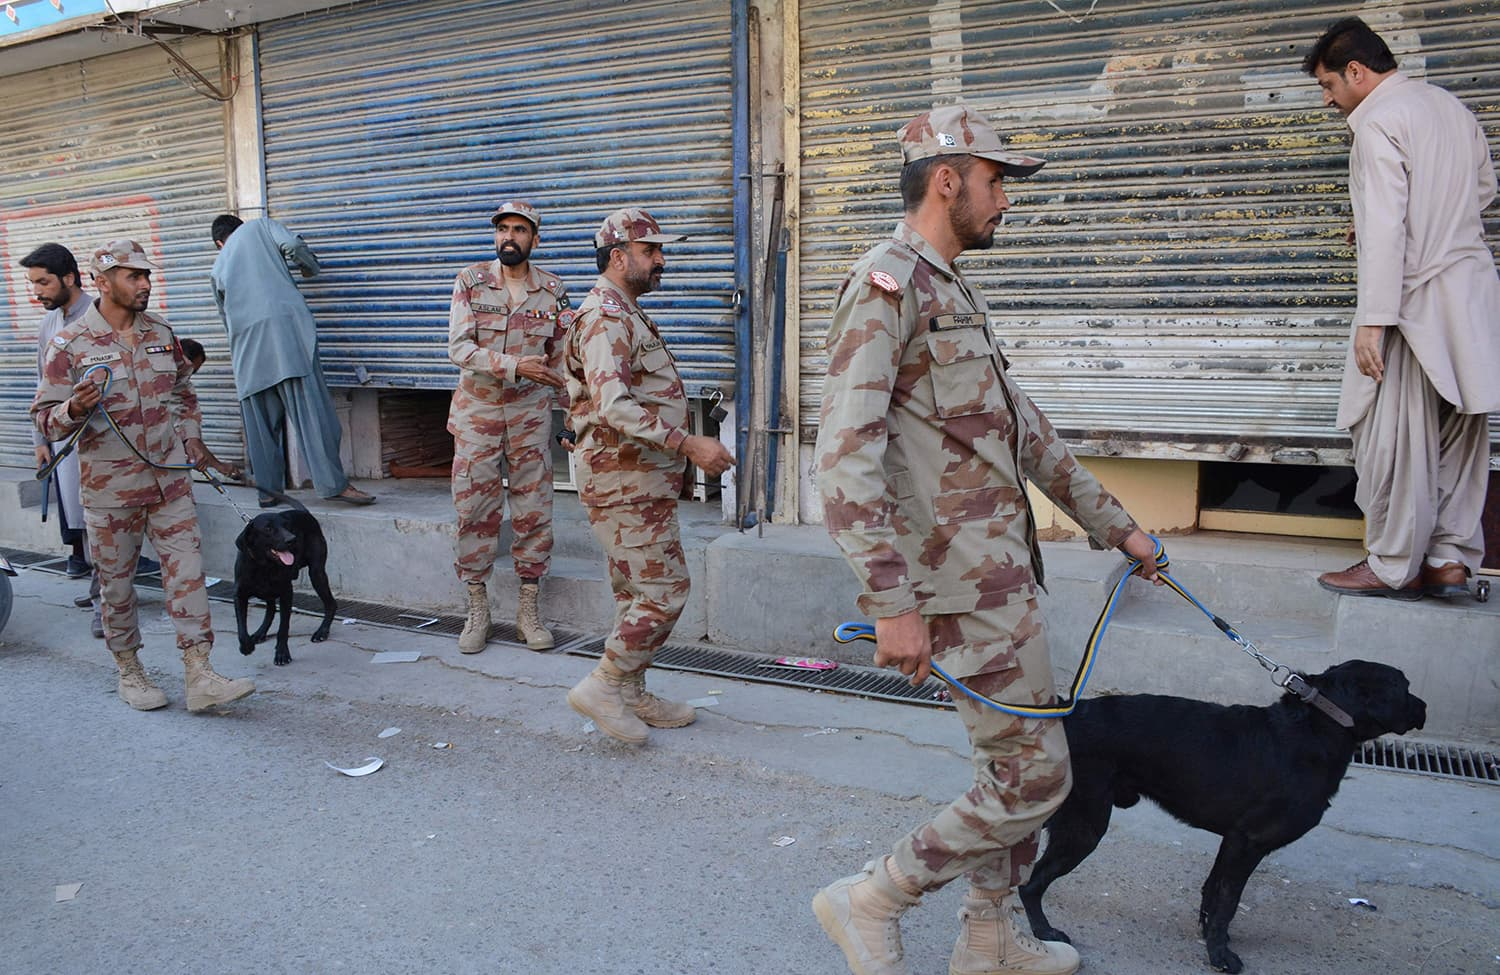 Rangers patrol with sniffing dogs ahead of a procession in Quetta. —AFP